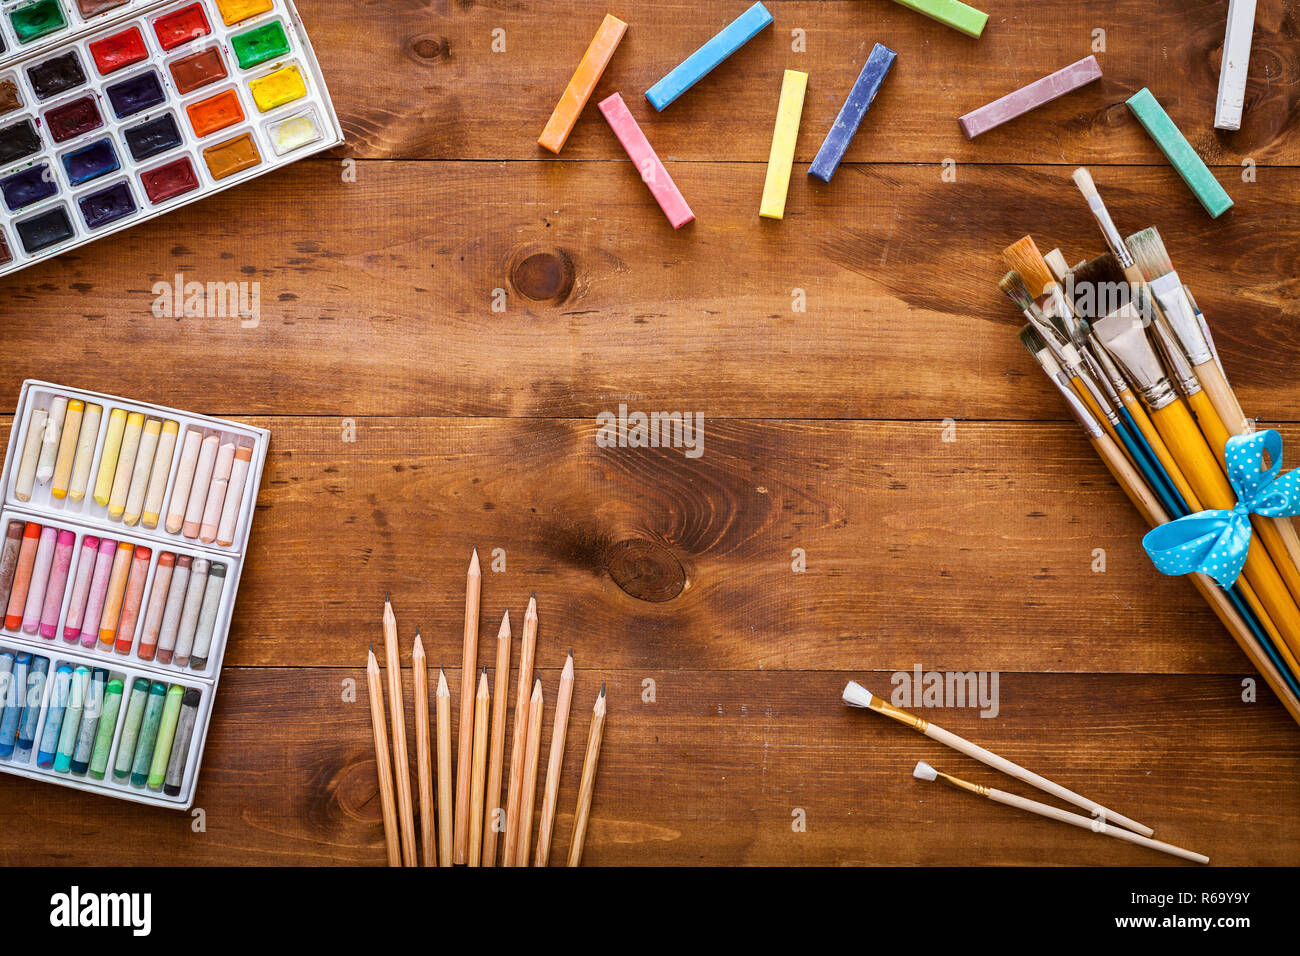 Creative art work accessories tools supplies set on messy desk, paint brushes, paintbox watercolors crayons pencils on brown wooden artistic backgroun - Stock Image